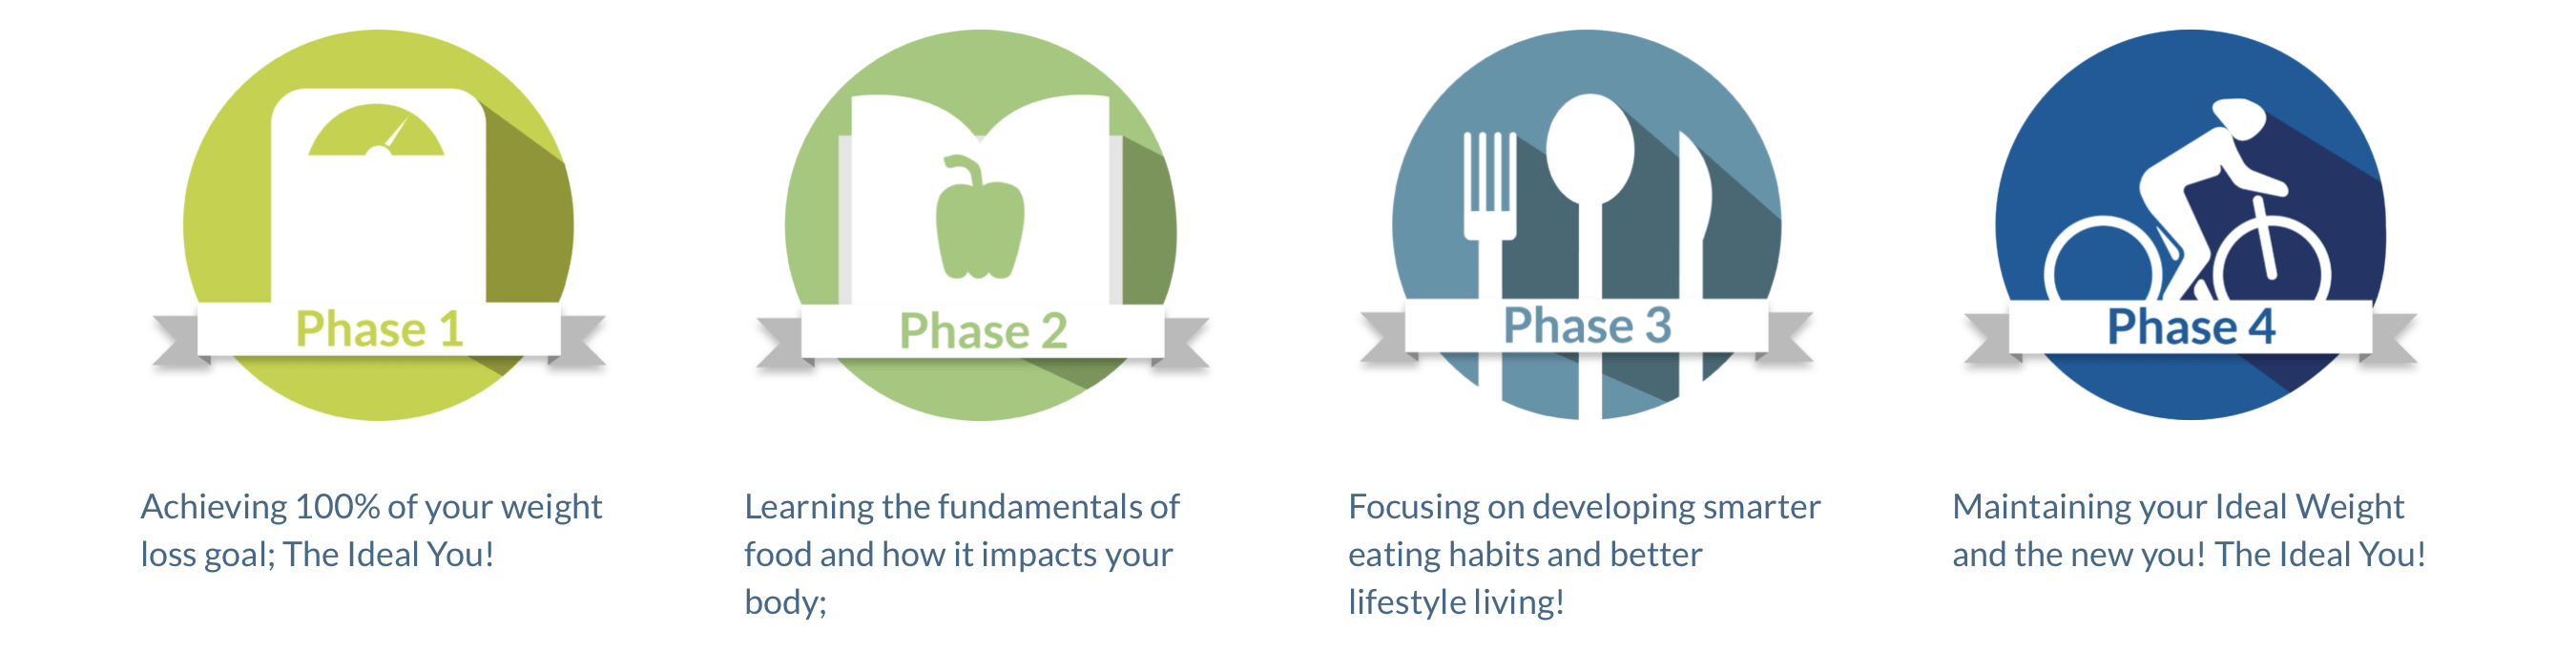 Four Phases of Ideal Protein